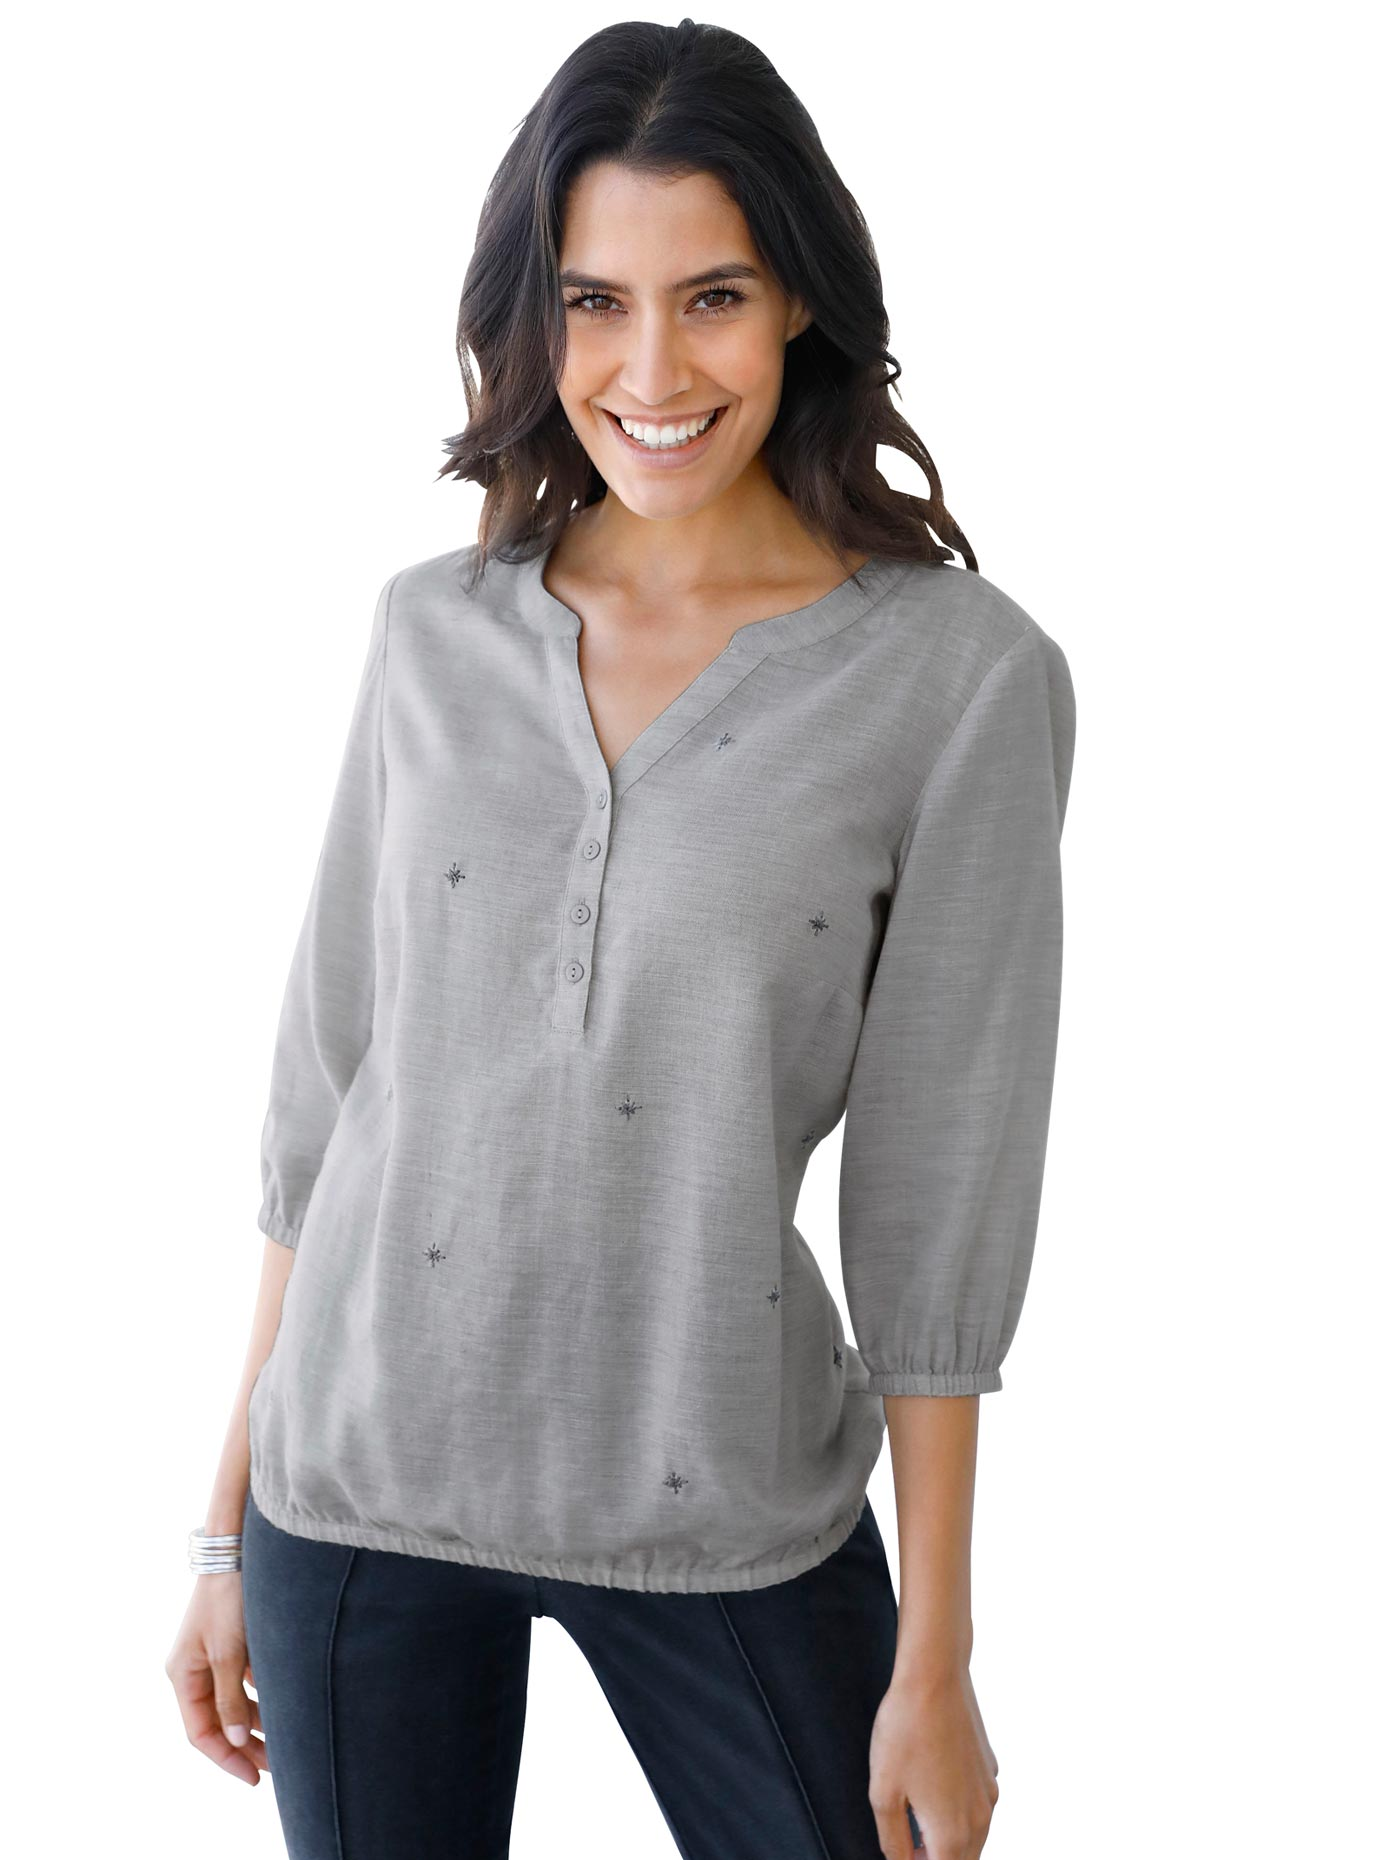 Classic Inspirationen Bluse in Flanell-Optik